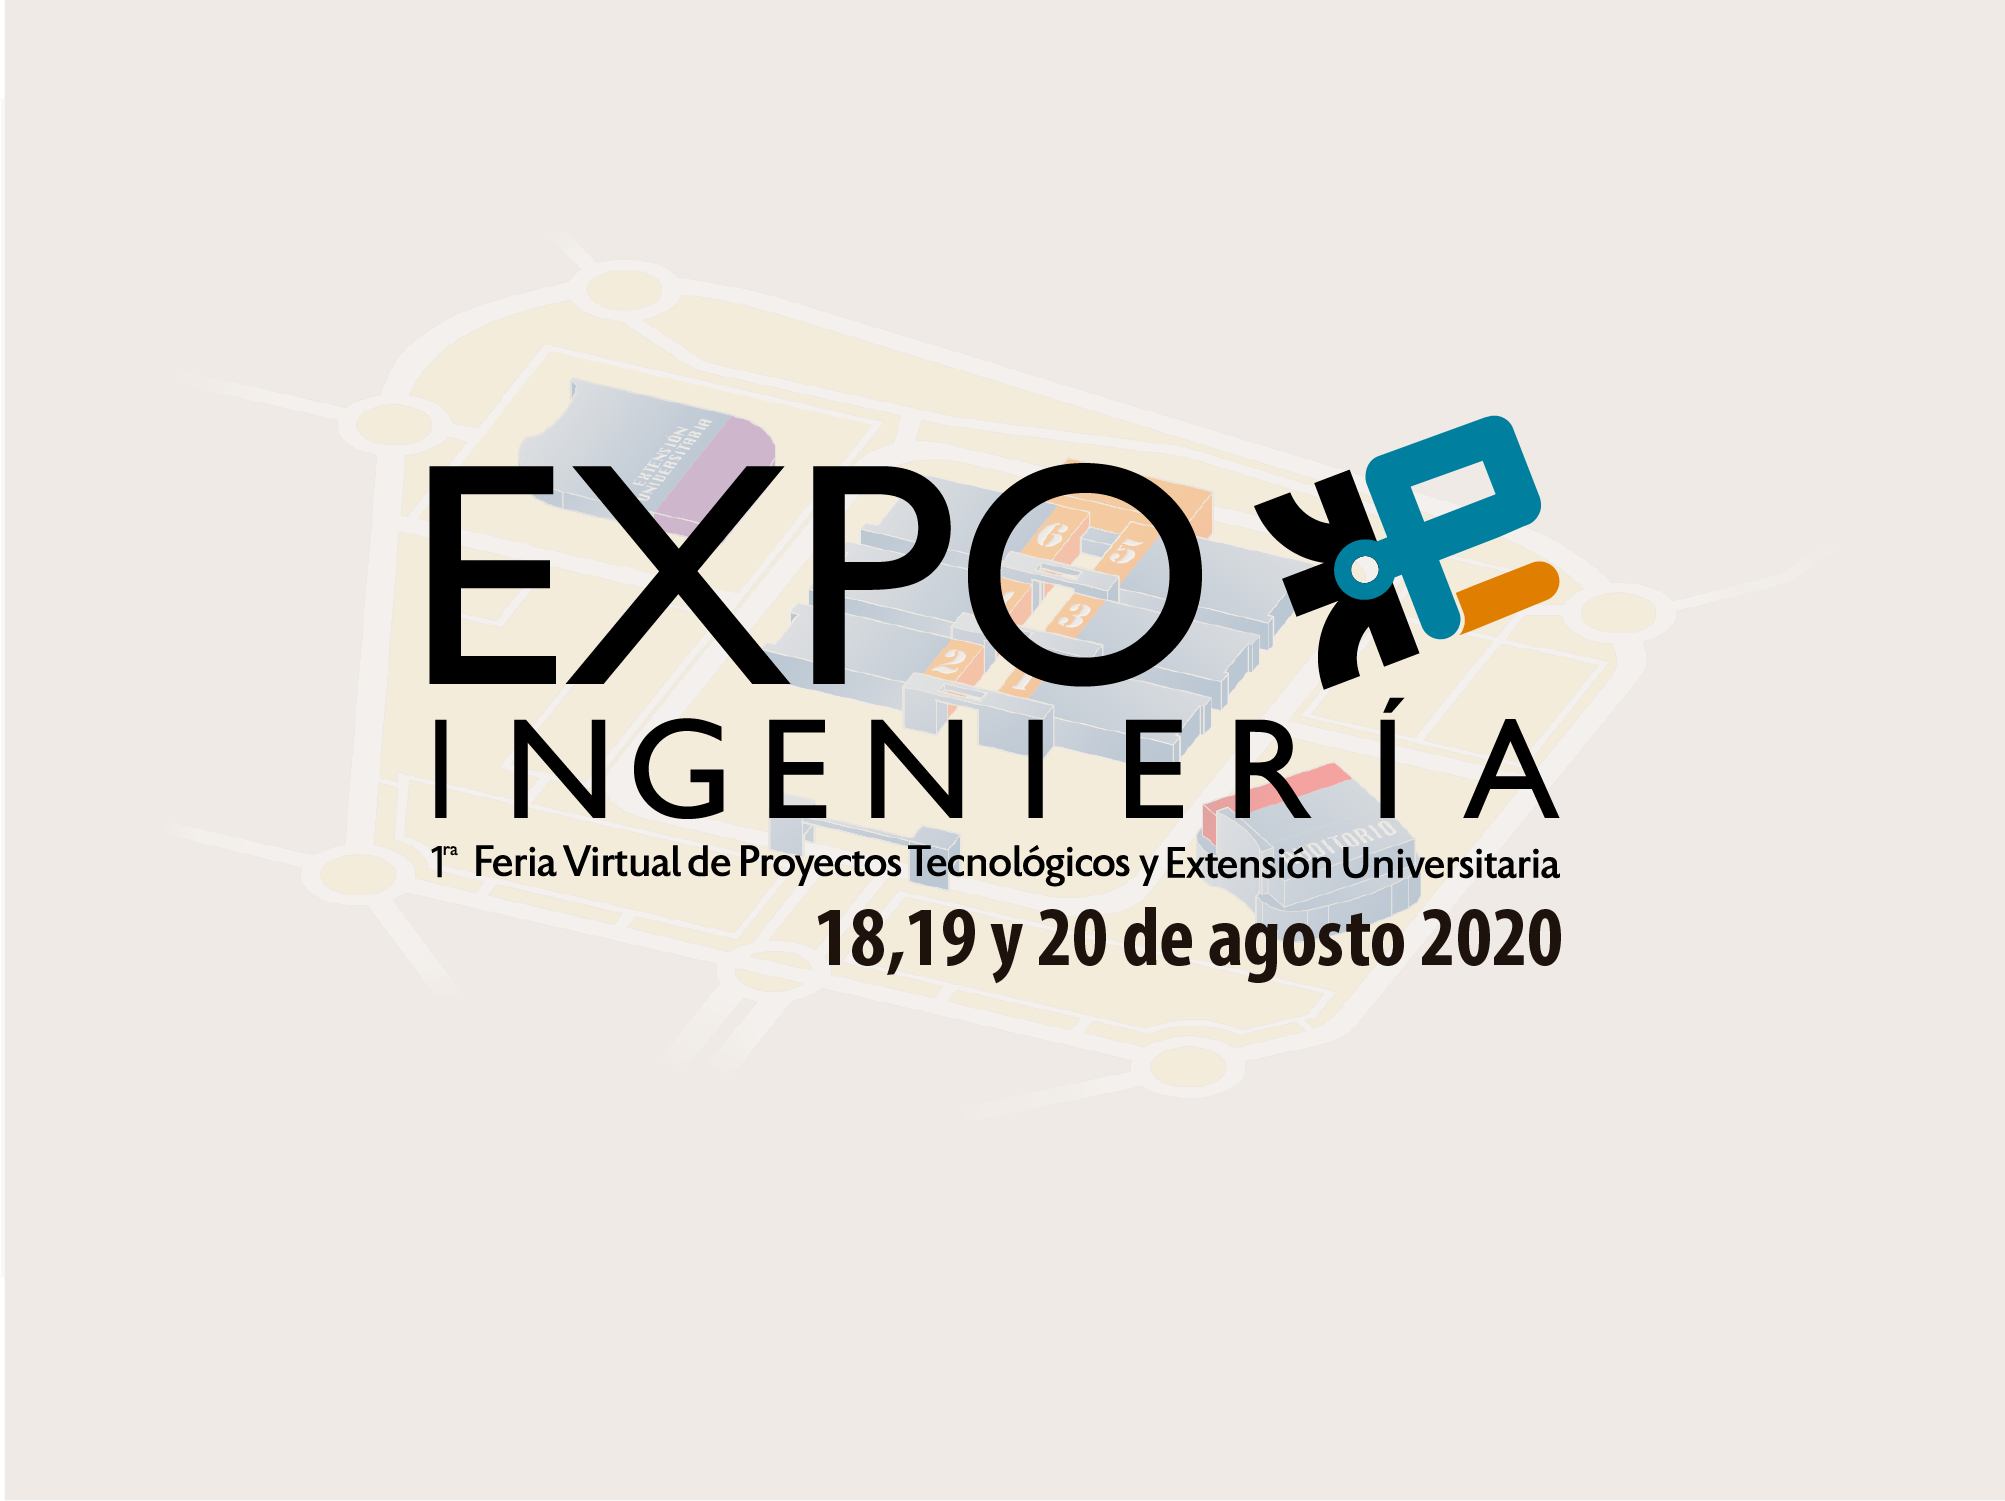 Expo Ingeniería